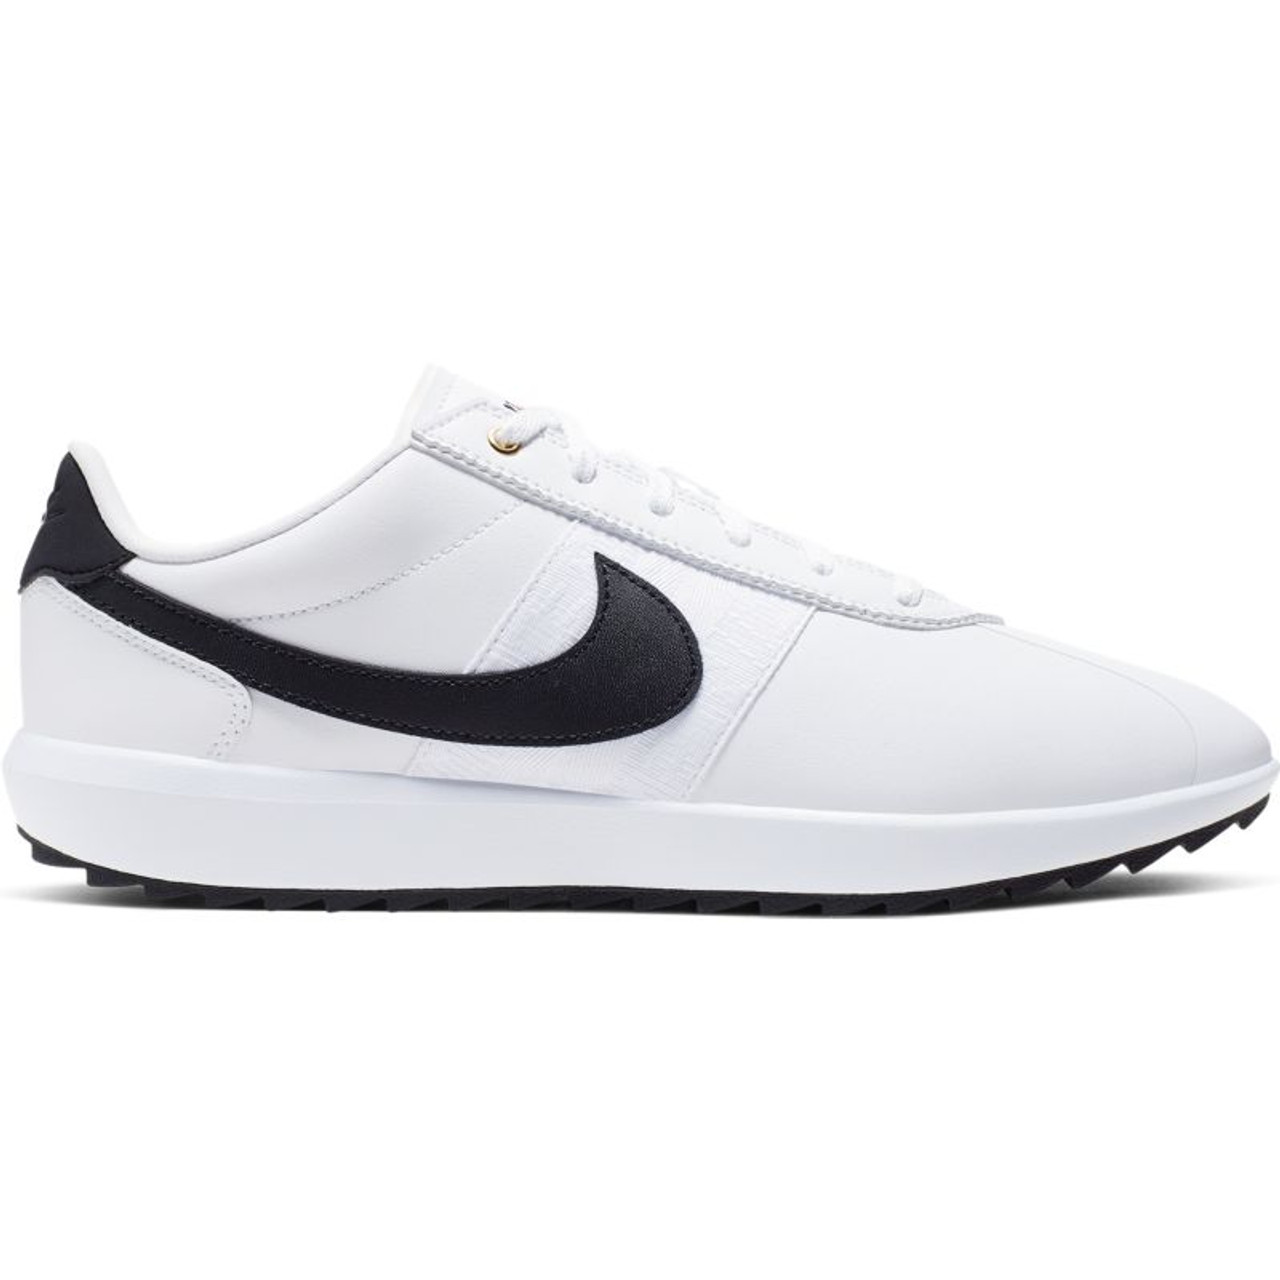 Nike Womens Cortez G Golf Shoes - White / Black / Metallic Gold